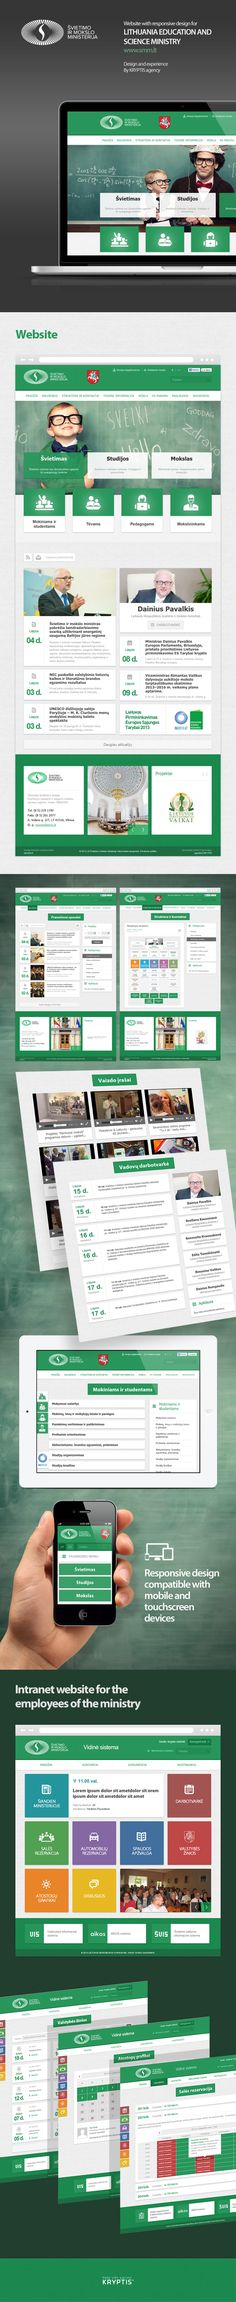 Responsive design website for the Ministry of Education by KRYPTIS digital agency, via Behance